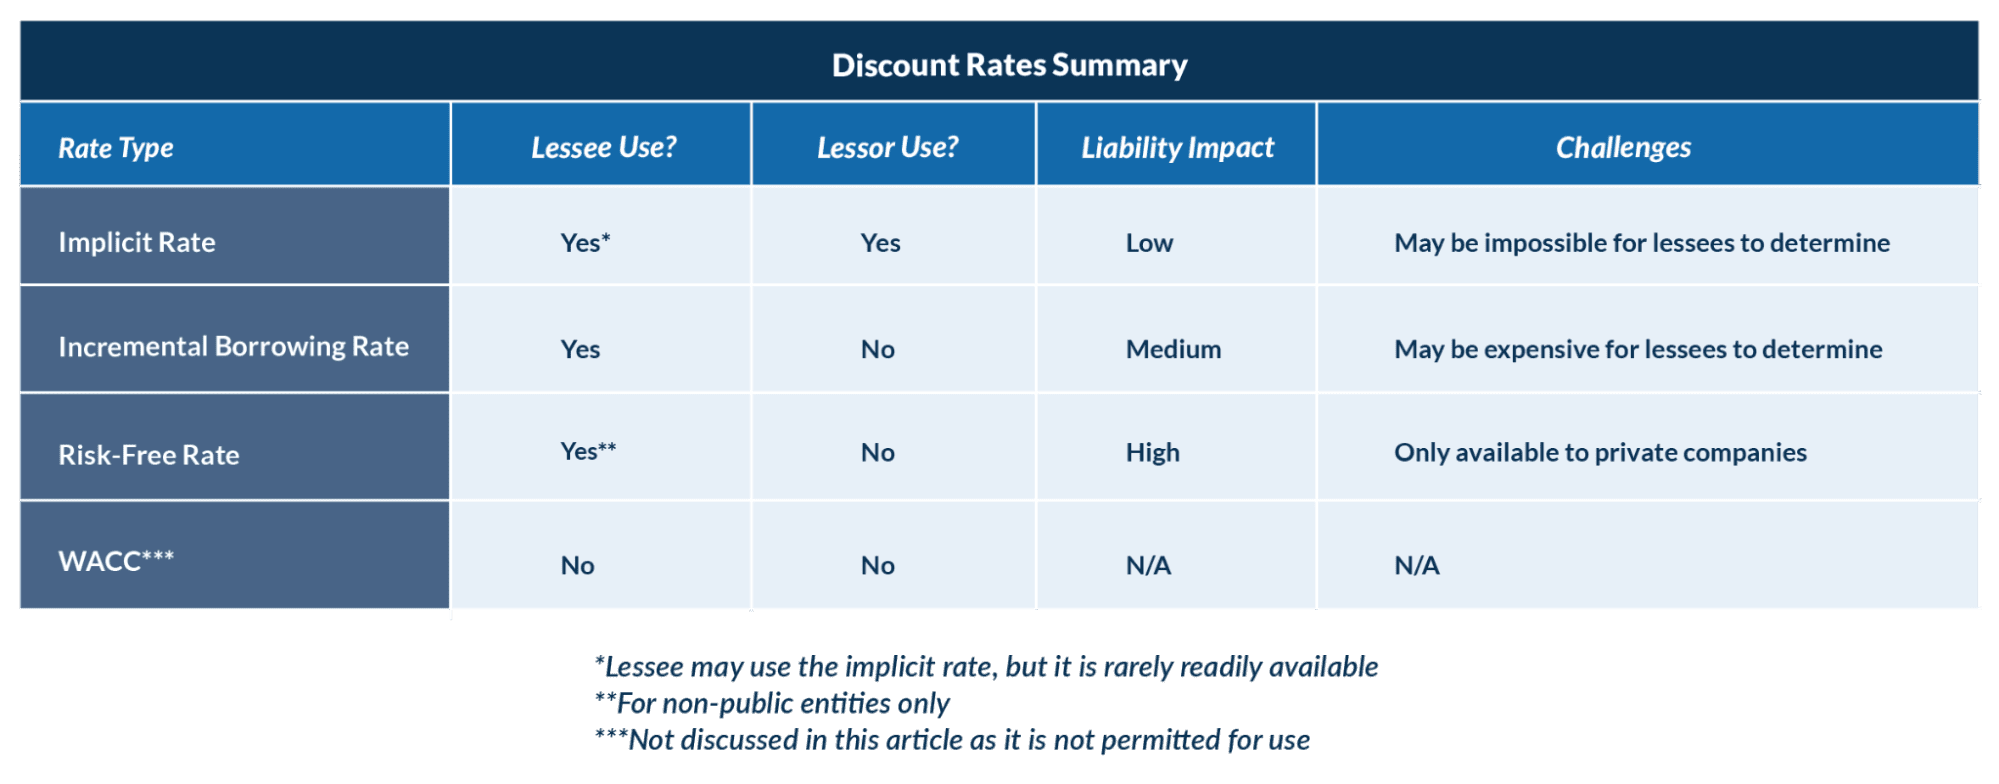 Summary of Discount Rates